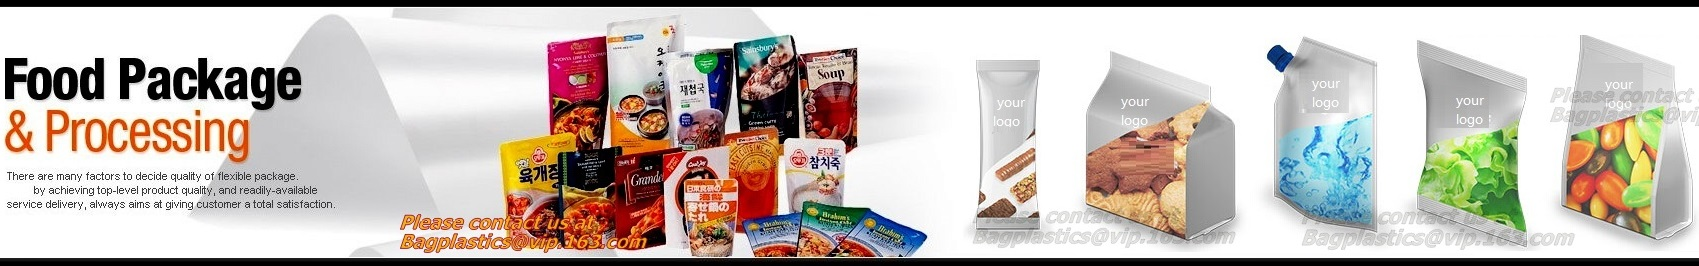 YANTAI BAGEASE PACKAGING PRODUCTS CO.,LTD. Main Image